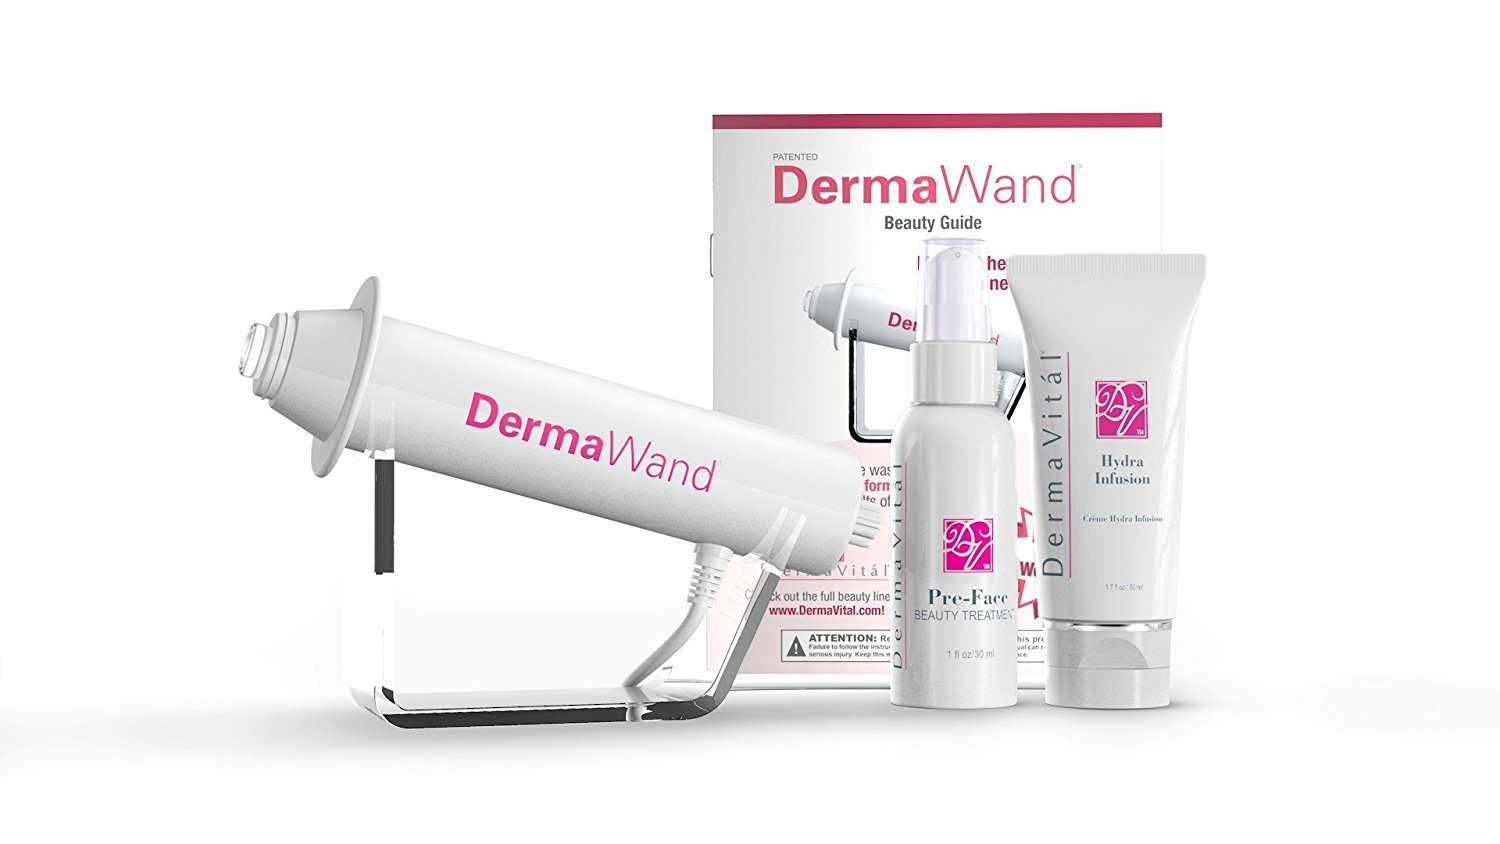 Deluxe DermaWand Anti-Aging System ICTV Brands Inc DWUKKIT2